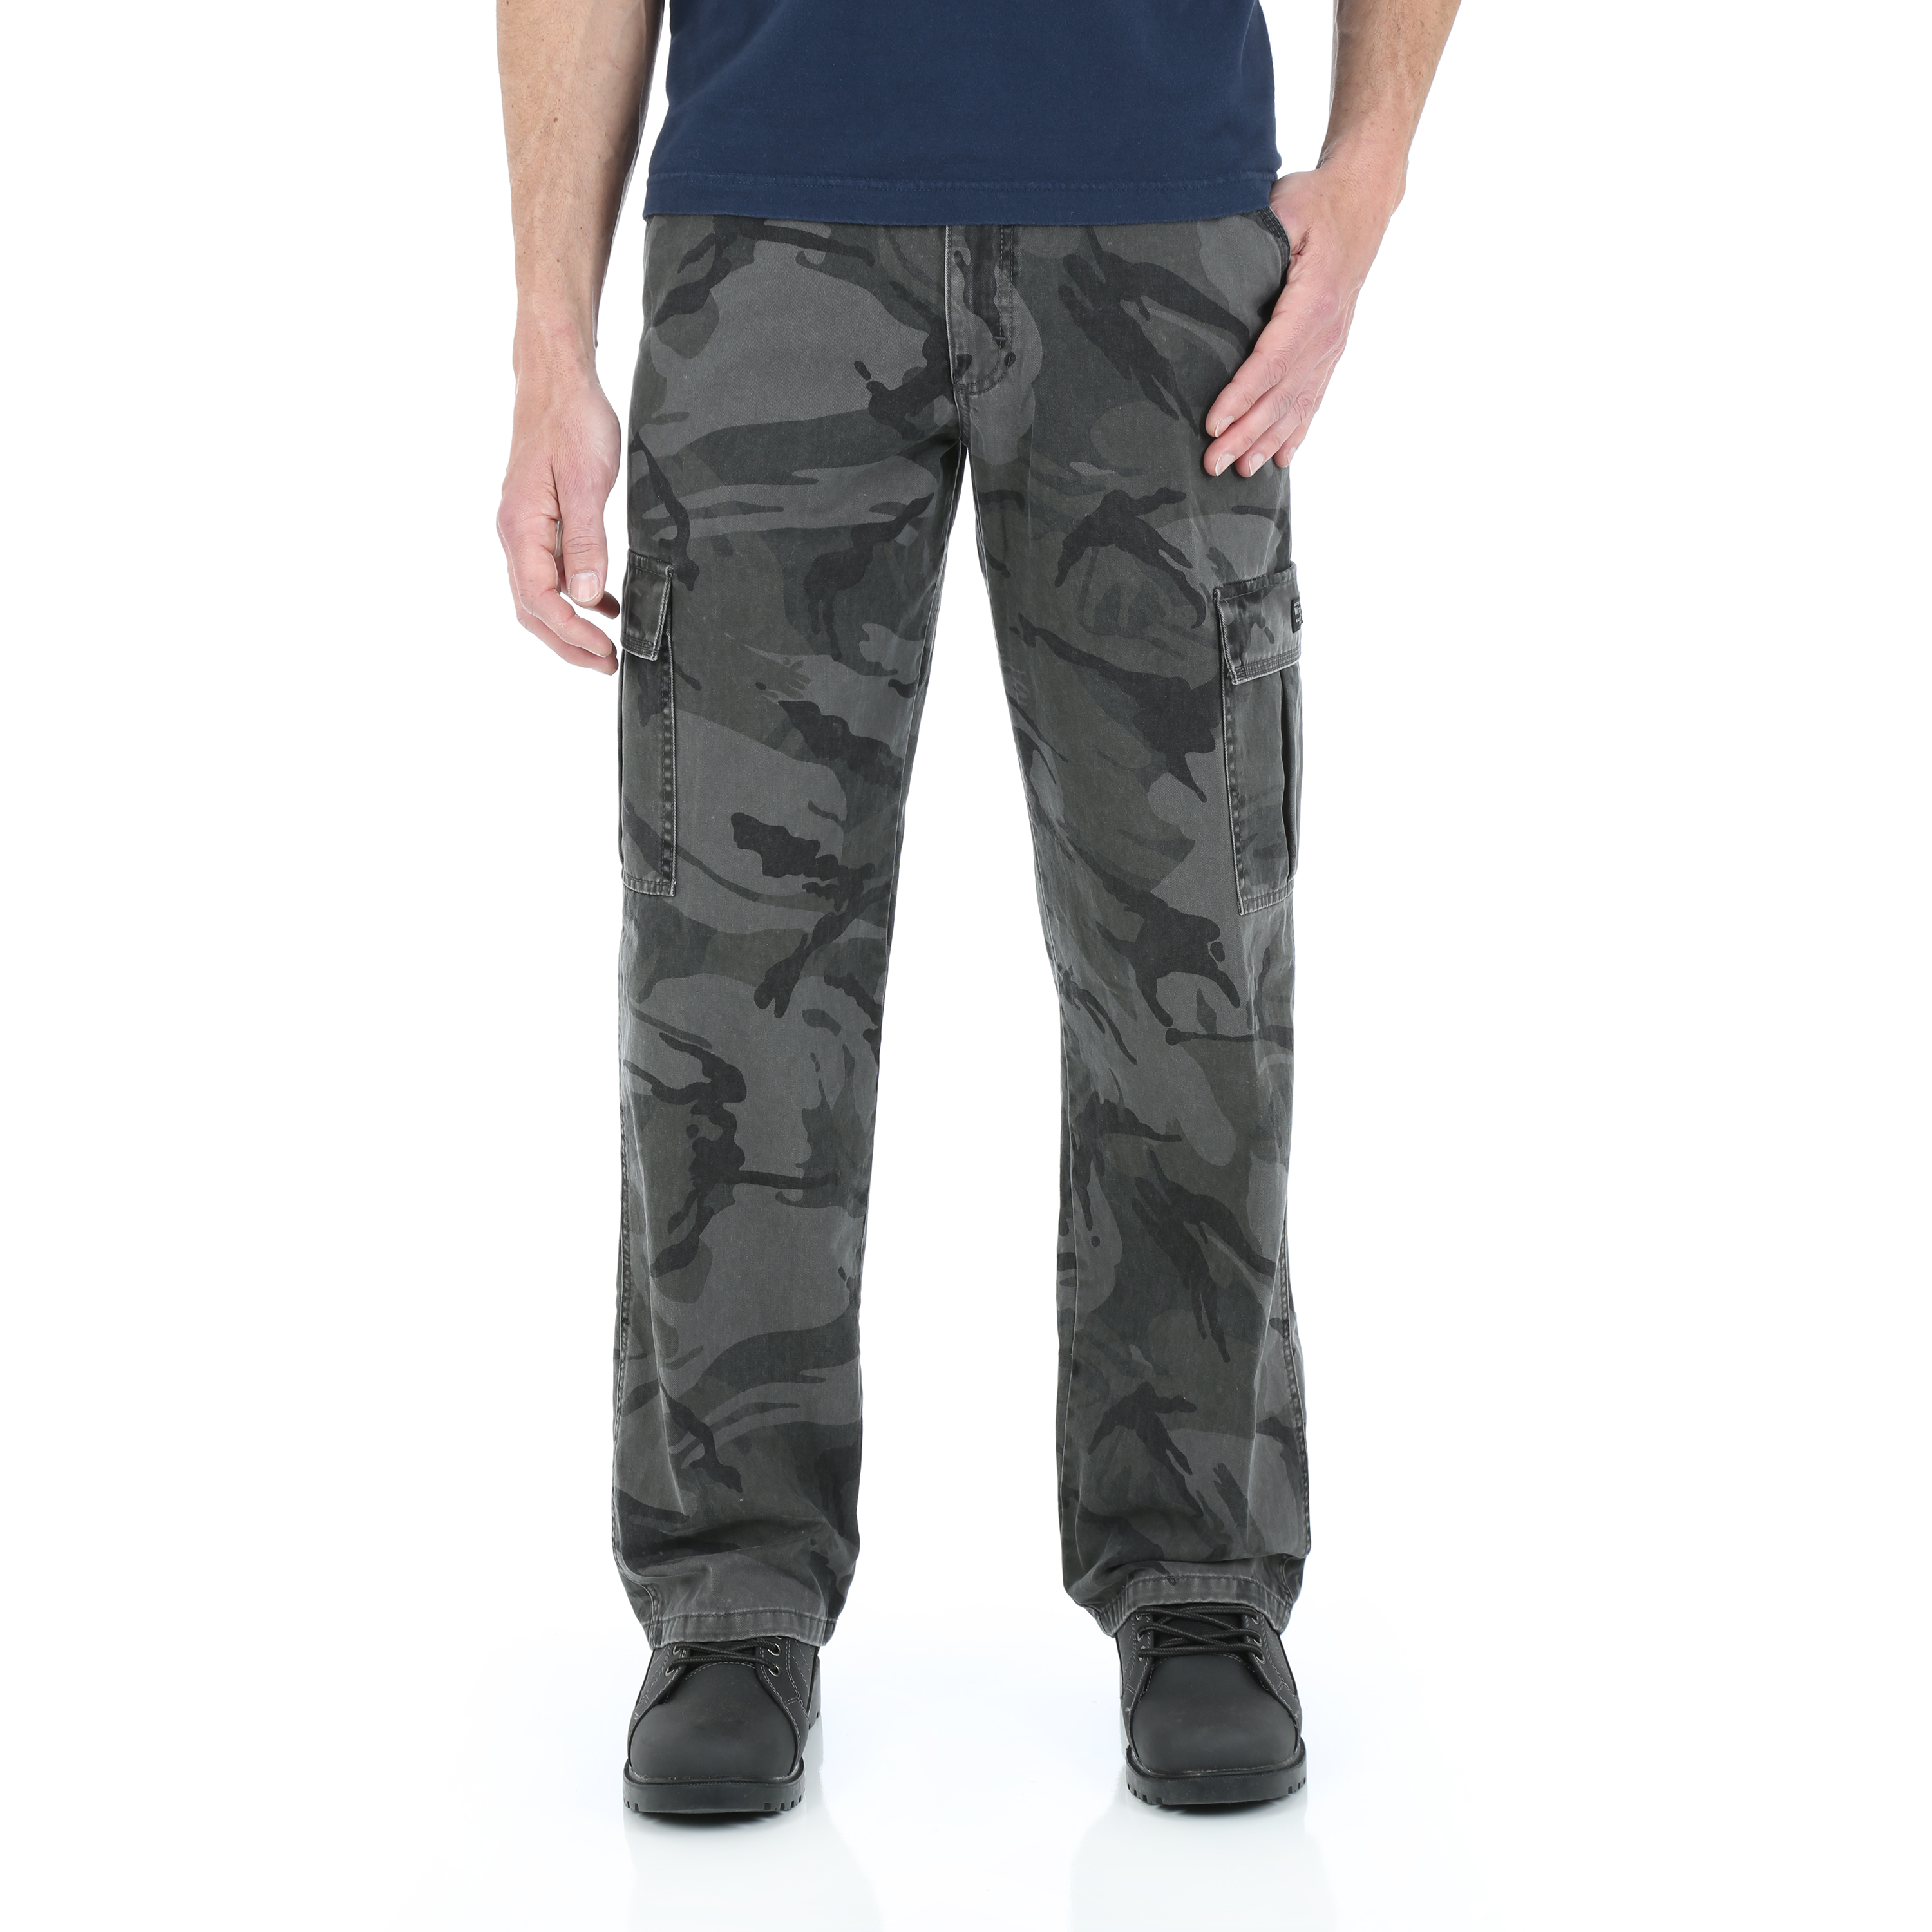 Wrangler Mens Loose Fit Twill Cargo Pants